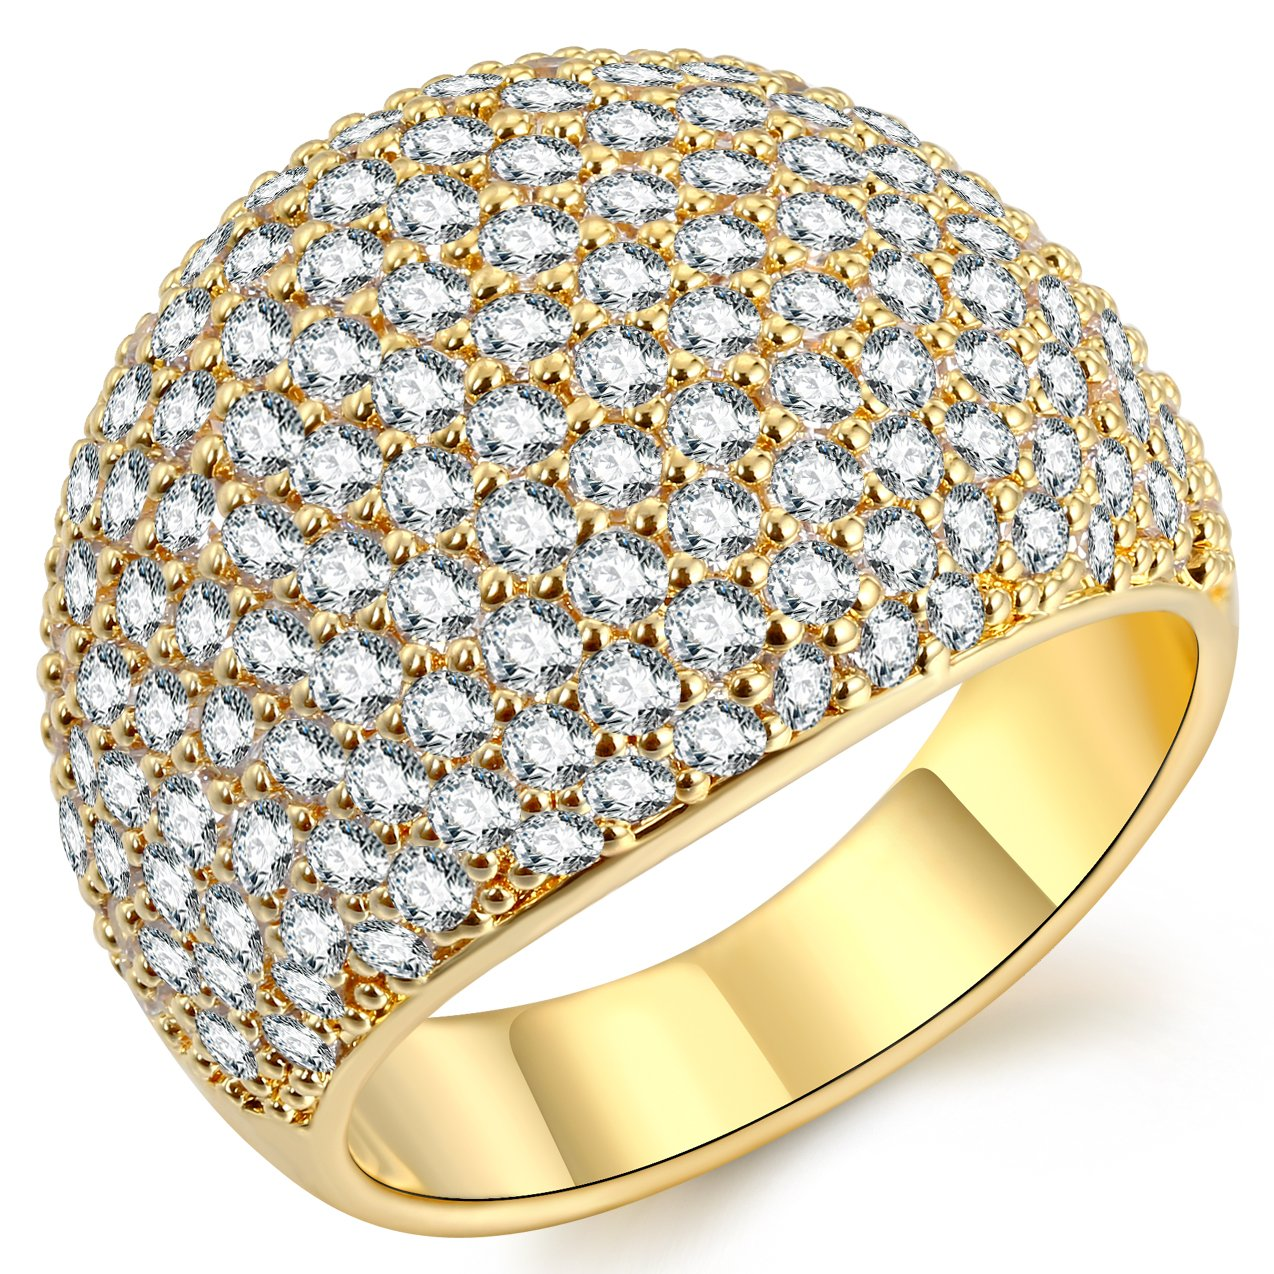 Big Gold Dome Ring - Diamond Accent Cubic Zirconia Wide Band Round Promise Wedding Statement Rings for Women (Yellow, 5)